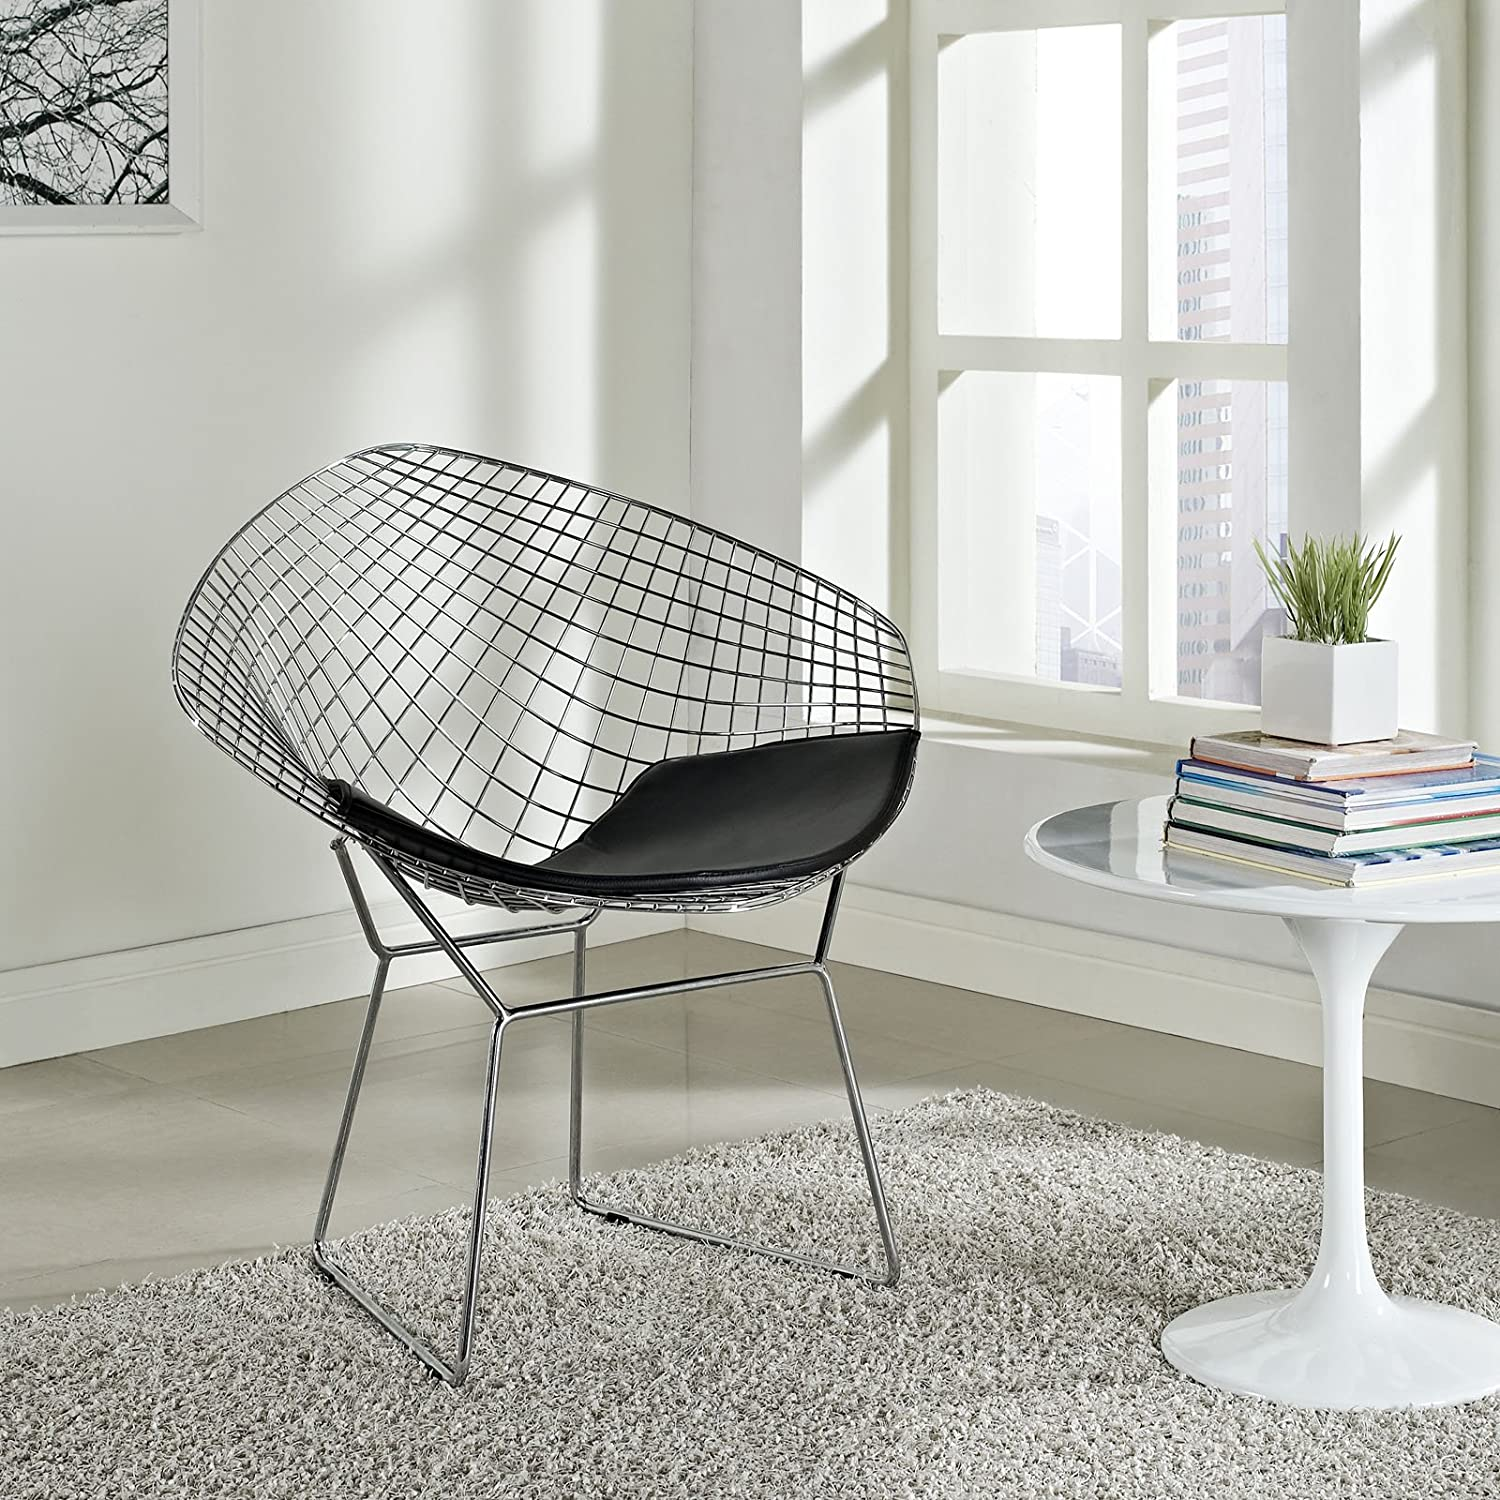 Bertoia diamond chair black - Bertoia Diamond Chair Black 2